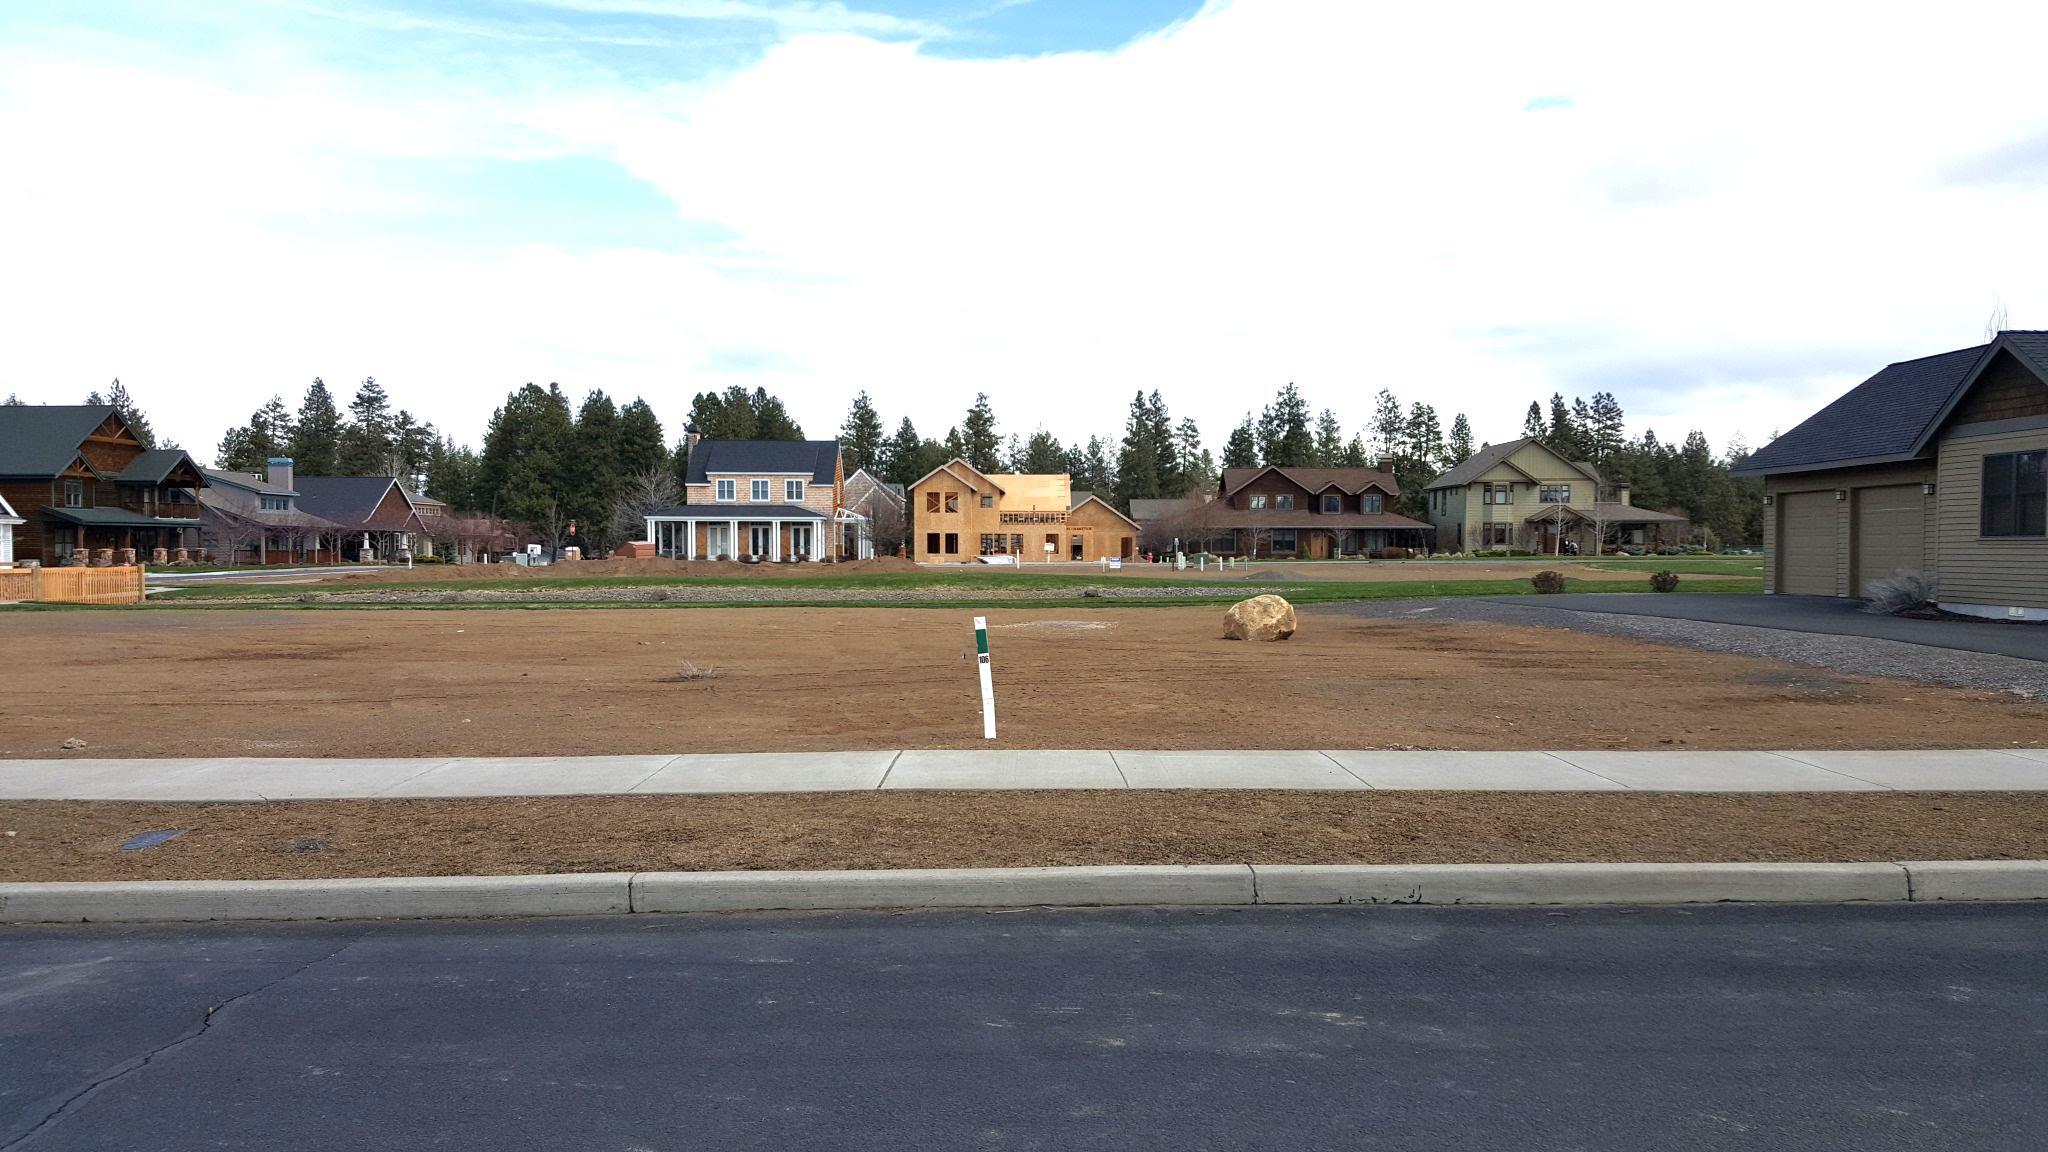 Photo of available homesite for New Homes in Sisters Oregon, Pine Meadows, by Gertz Fine Homes